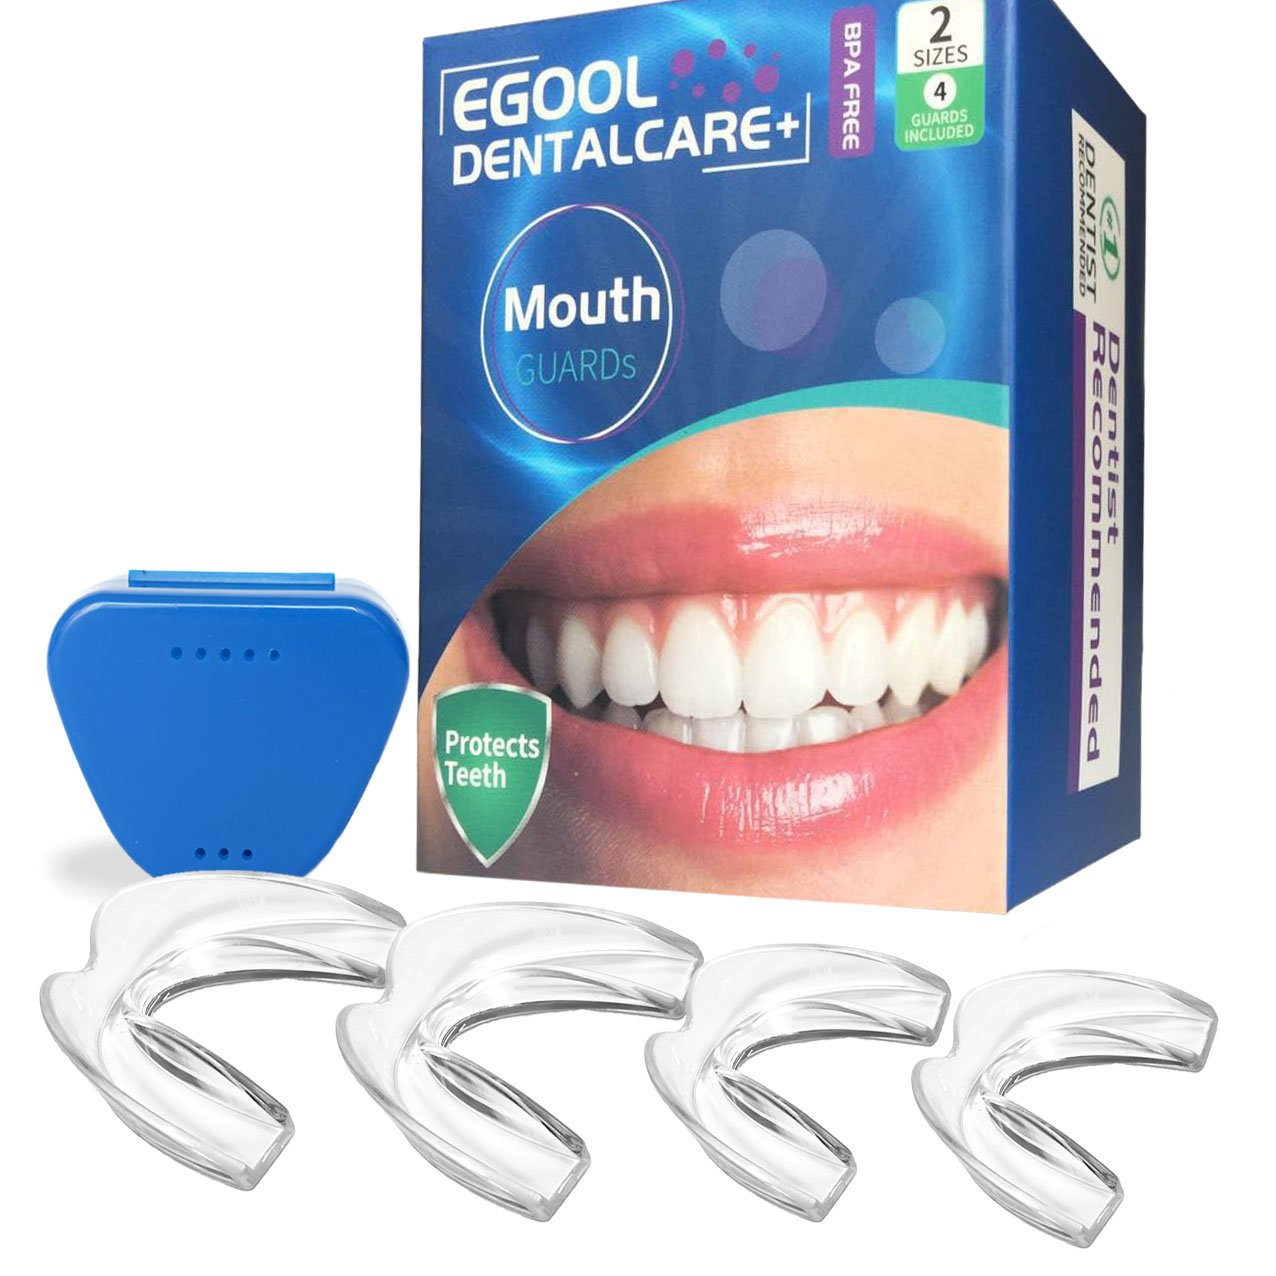 Egool Mouth Guard, Professional Dental Night Guard, Mouth Guard For Grinding Teeth -Stops Teeth Grinding, Bruxism, Clenching, Anti-Bacterial Container, BPA-Free, 4 Teeth Guards (2 Sizes)